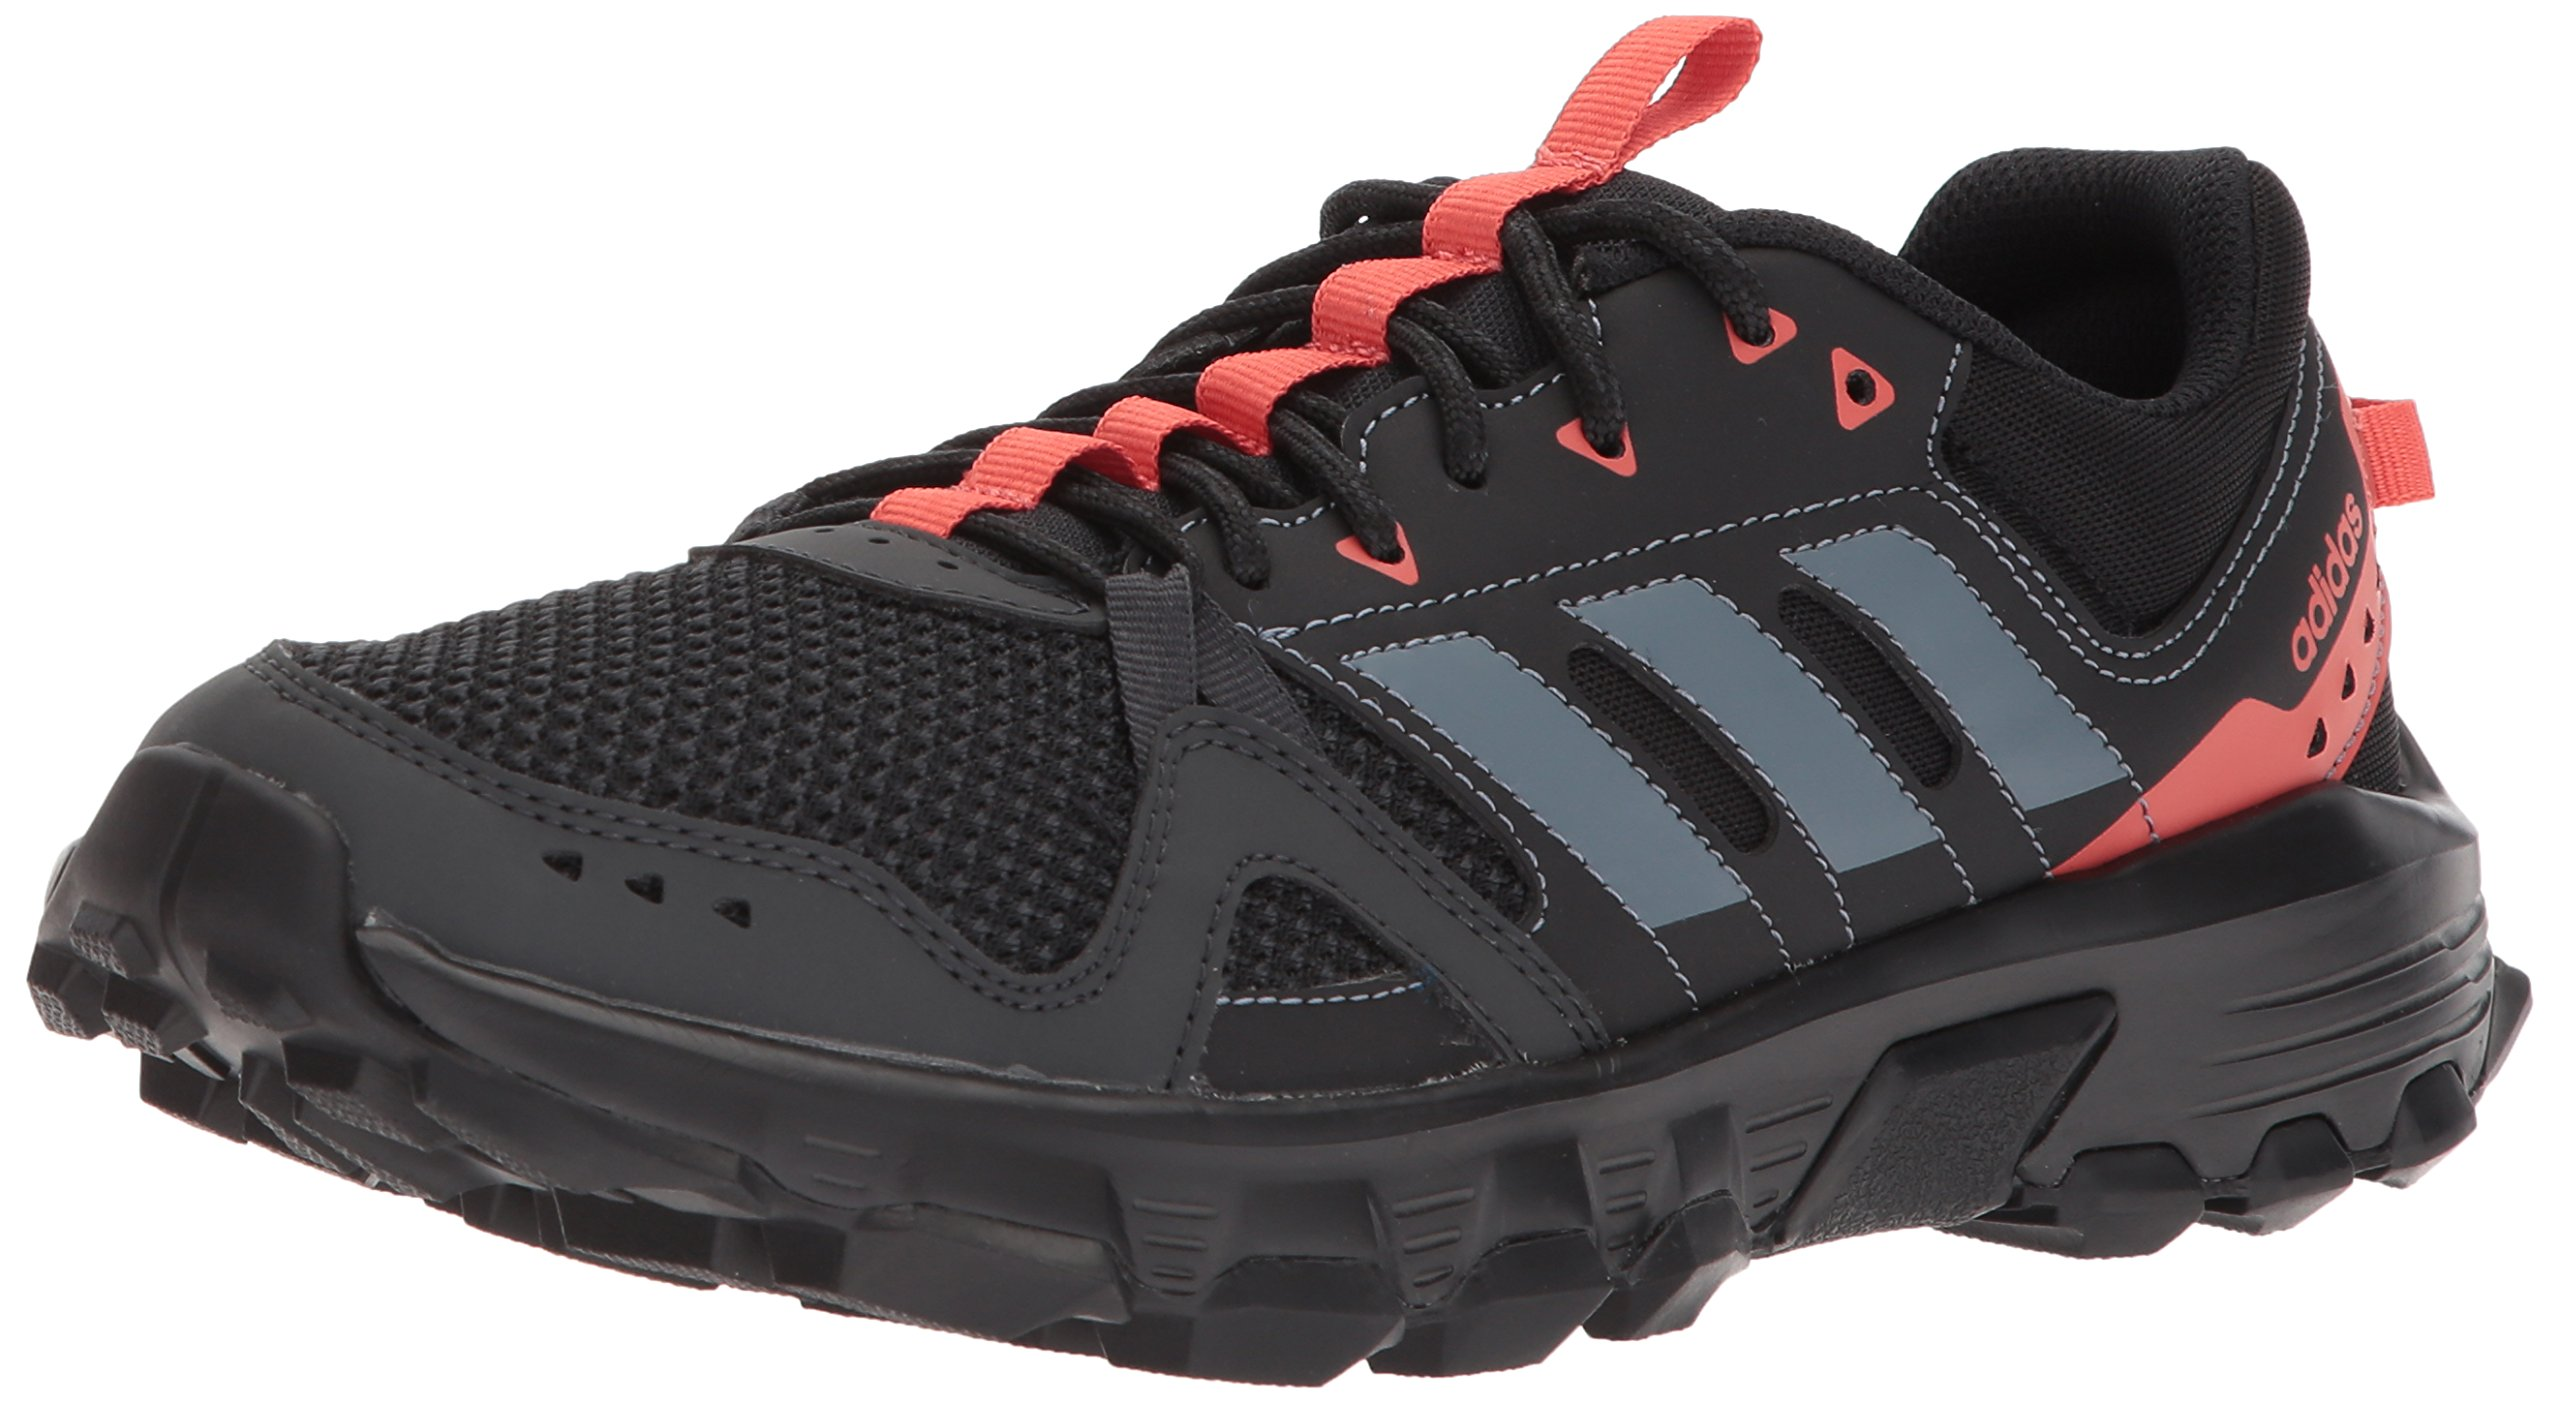 adidas Women's Rockadia w Trail Running Shoe, Carbon/Raw Steel/Trace Scarlet, 5.5 M US by adidas (Image #1)